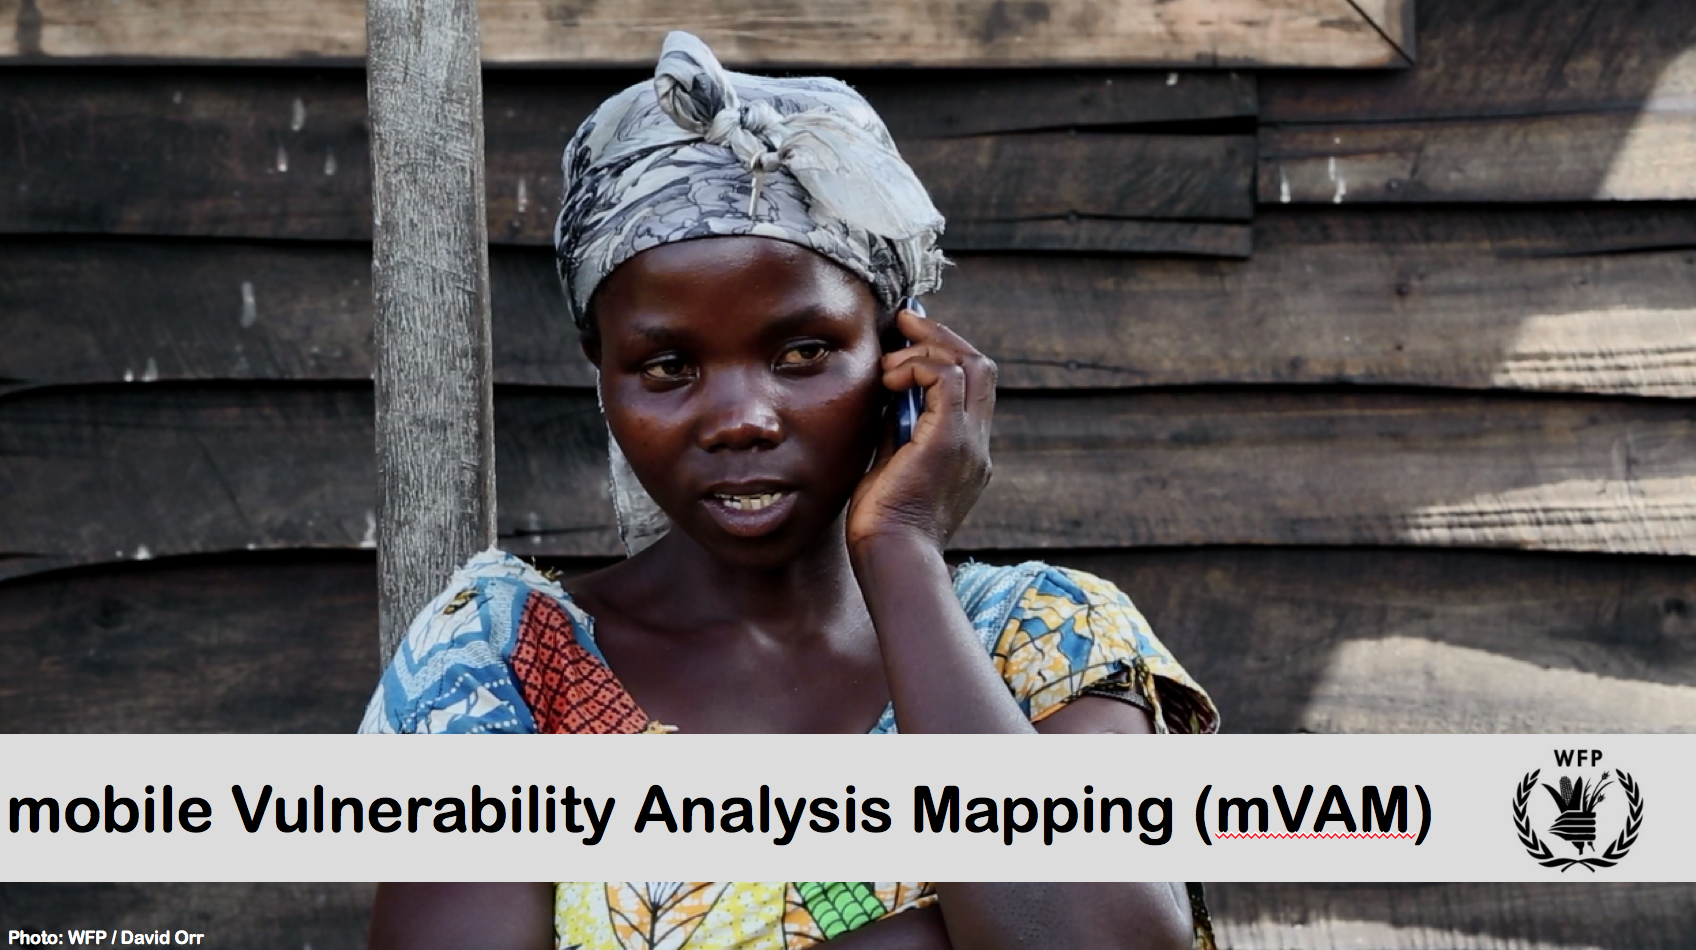 Solve hunger through data analysis and visualisation